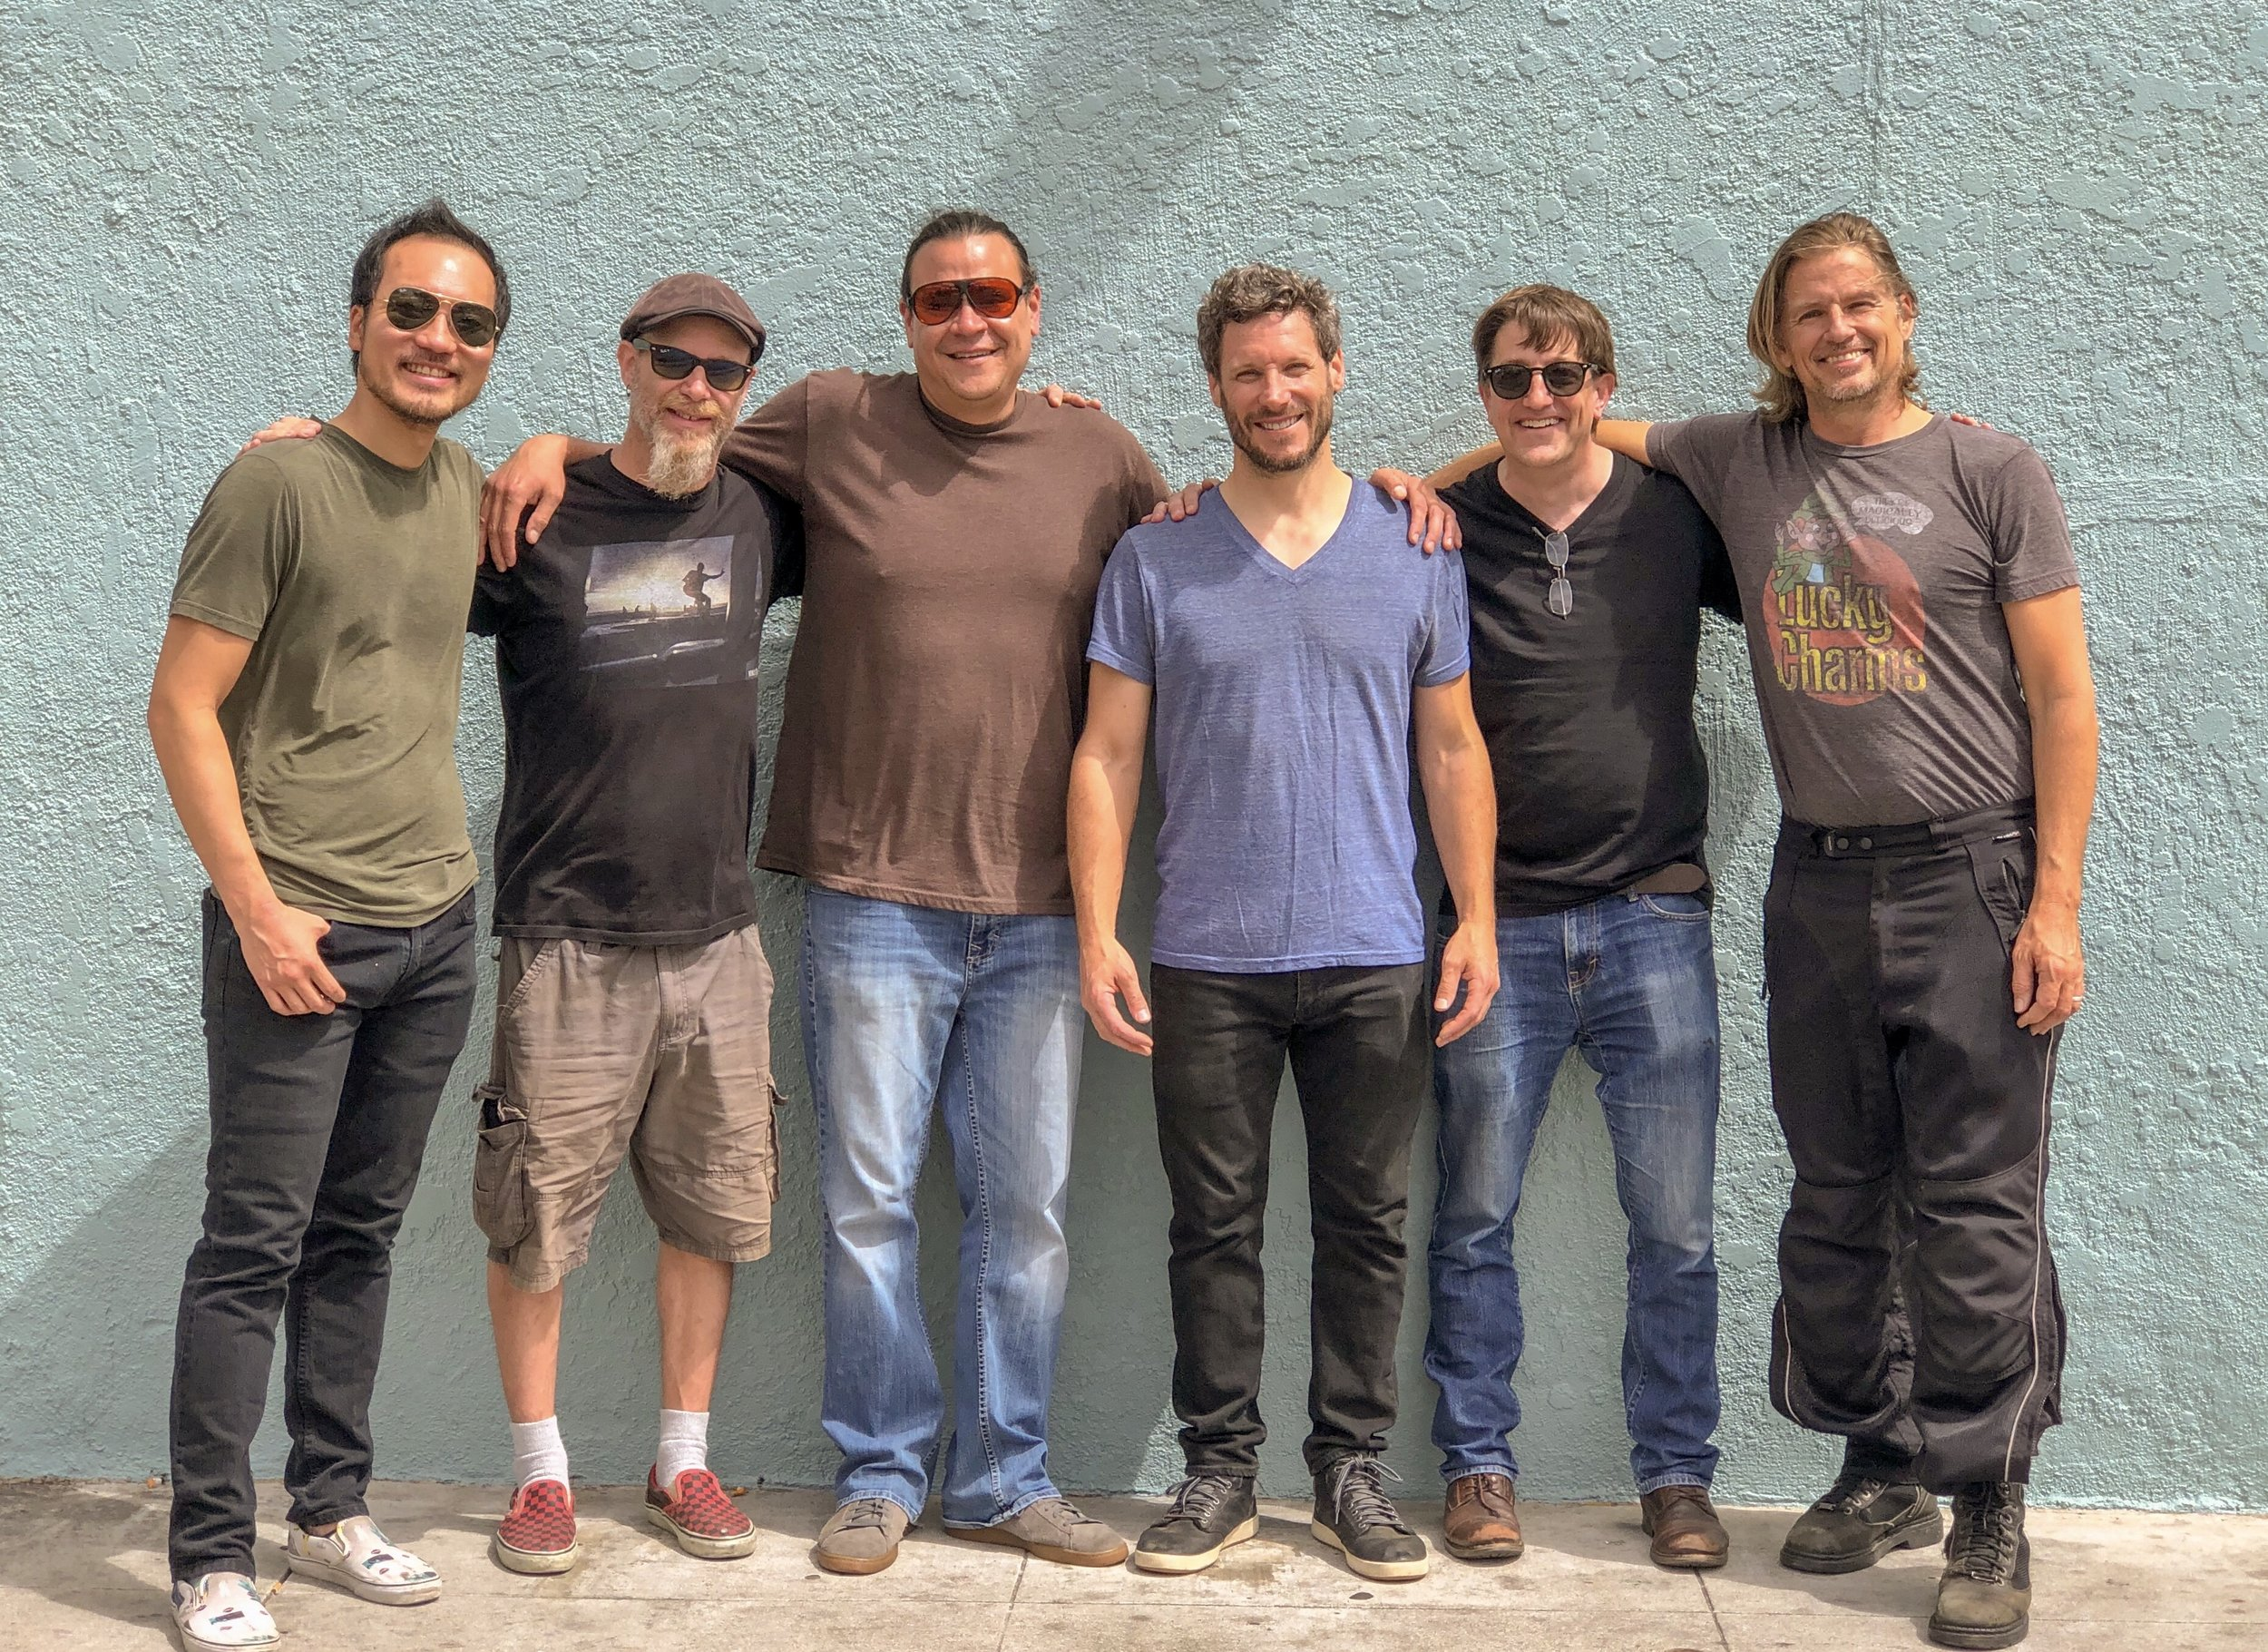 Rich Sheldon Band - Santa Monica Summer Soulstice - 6/22/19 (L to R: Steven Kim, Ben Martin, Mike Sweeney, Rich Sheldon, Doug Haxall, Russell Spurlock) Photo by Deanna Francke